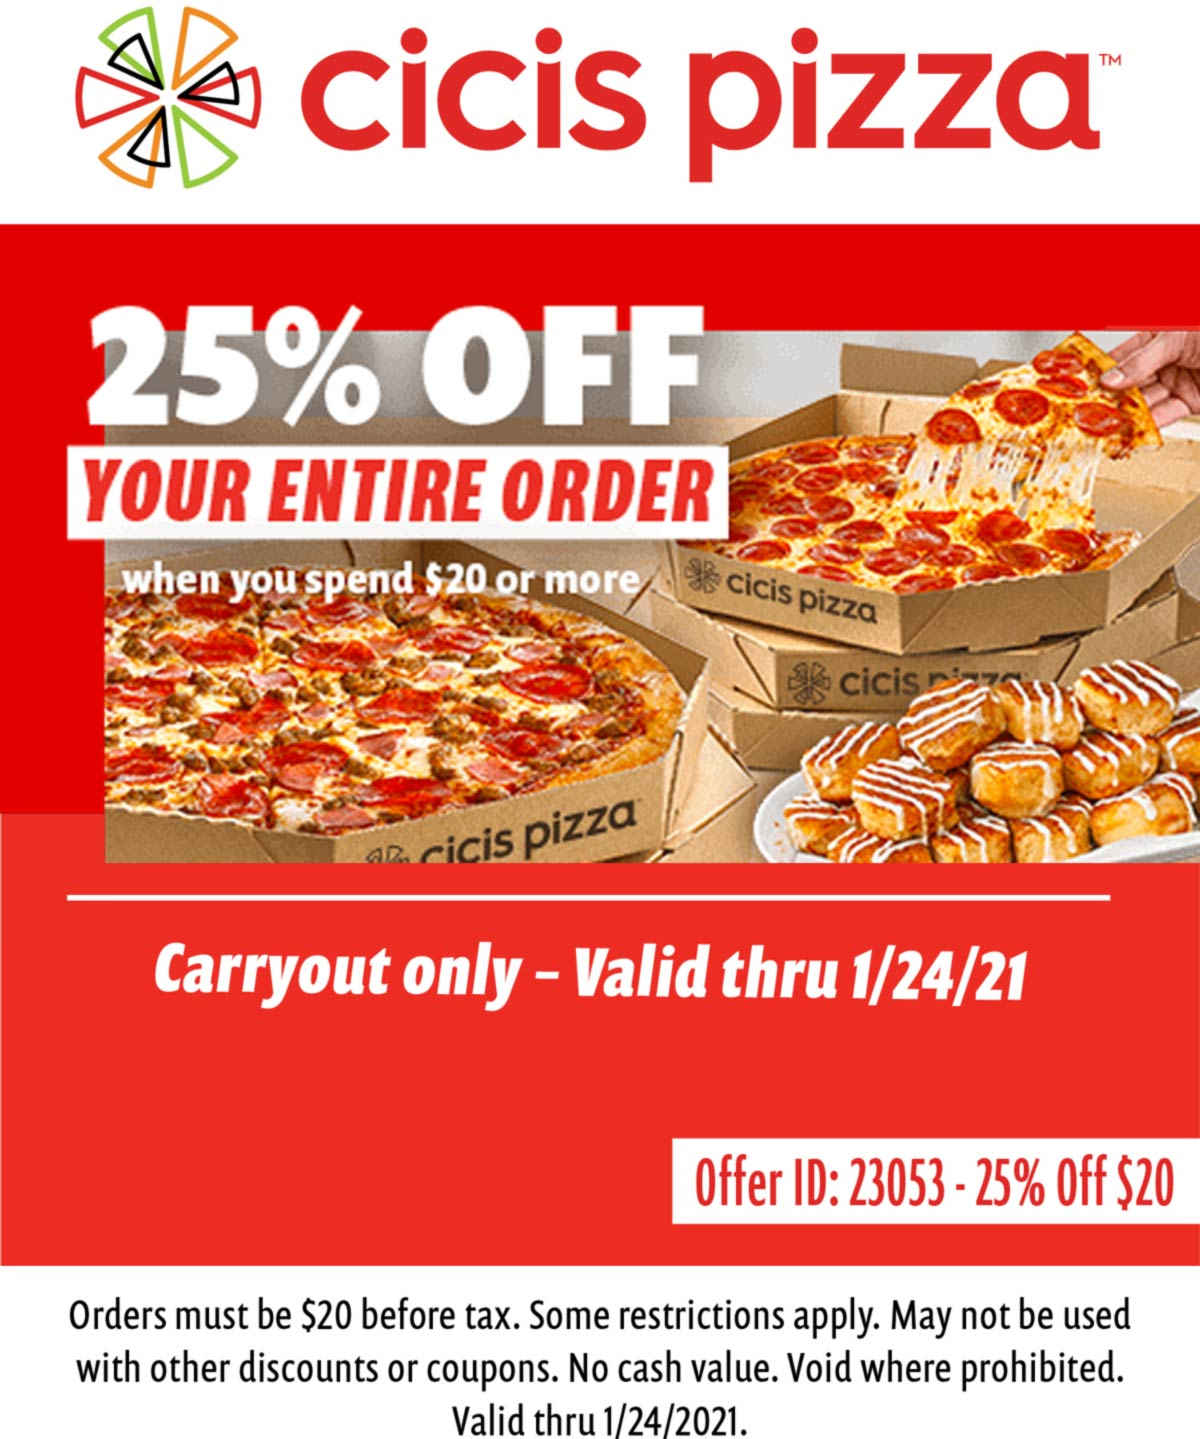 CiCis Pizza coupons & promo code for [January 2021]